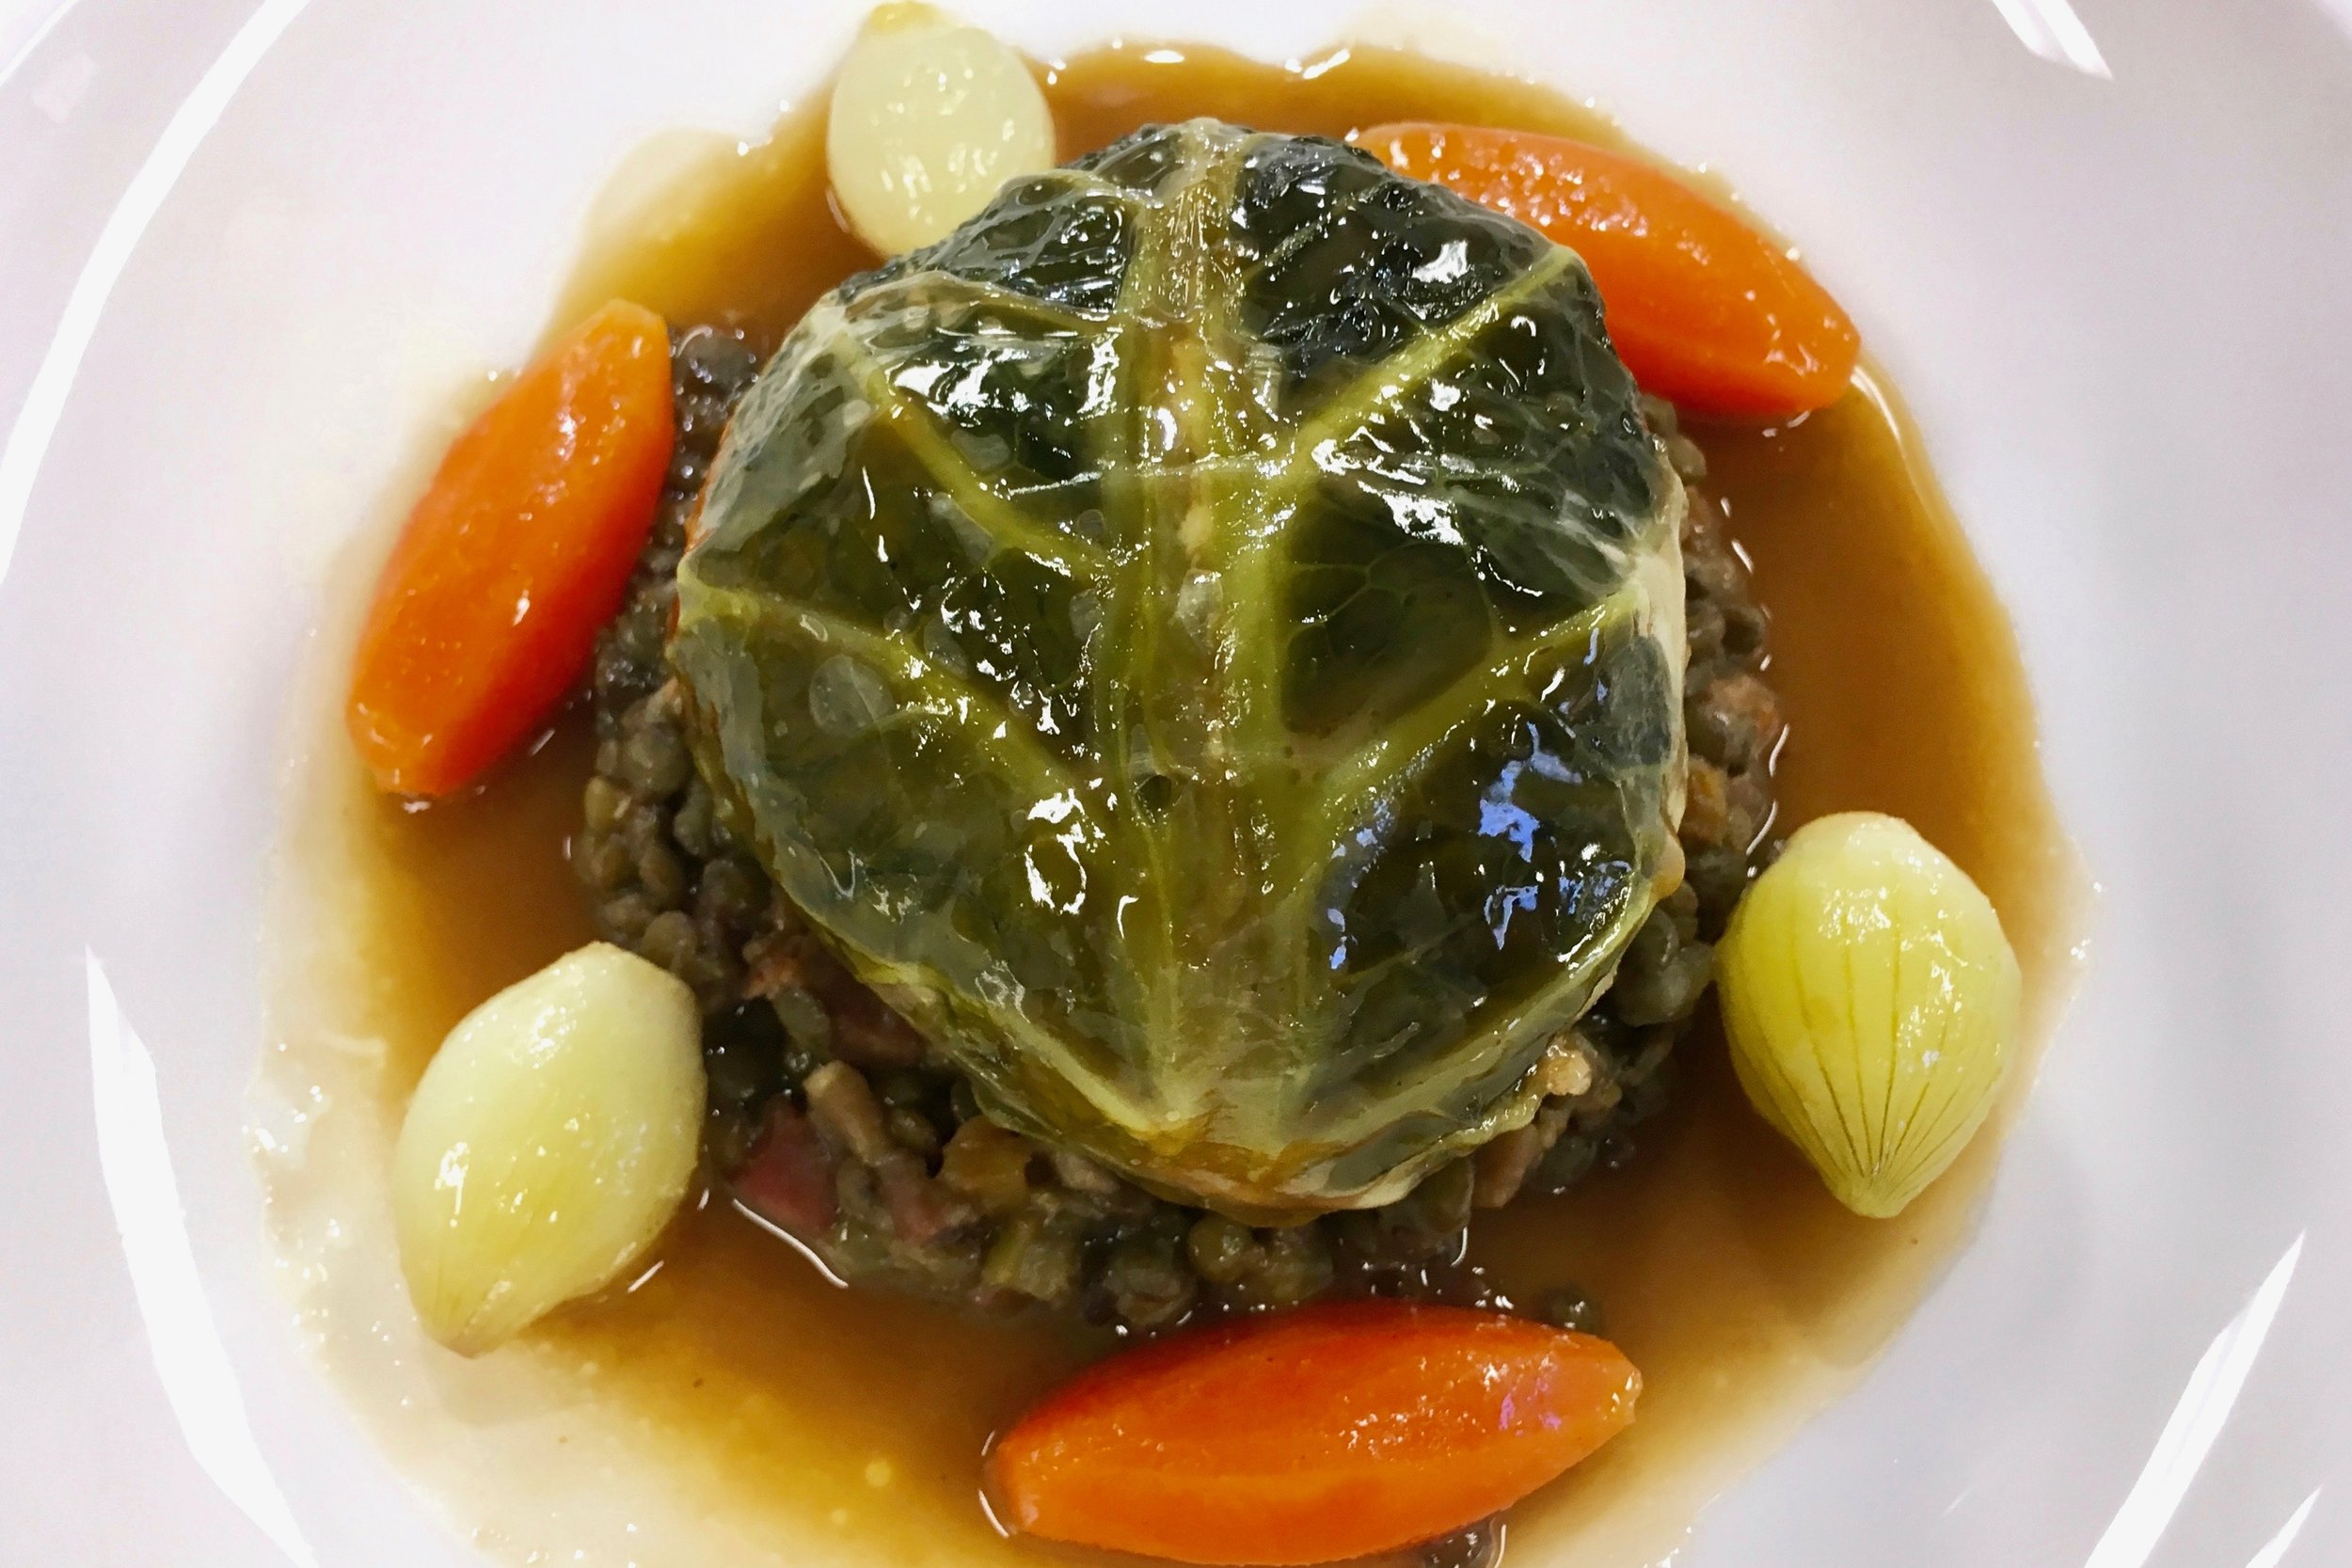 My attempt at stuffed cabbage